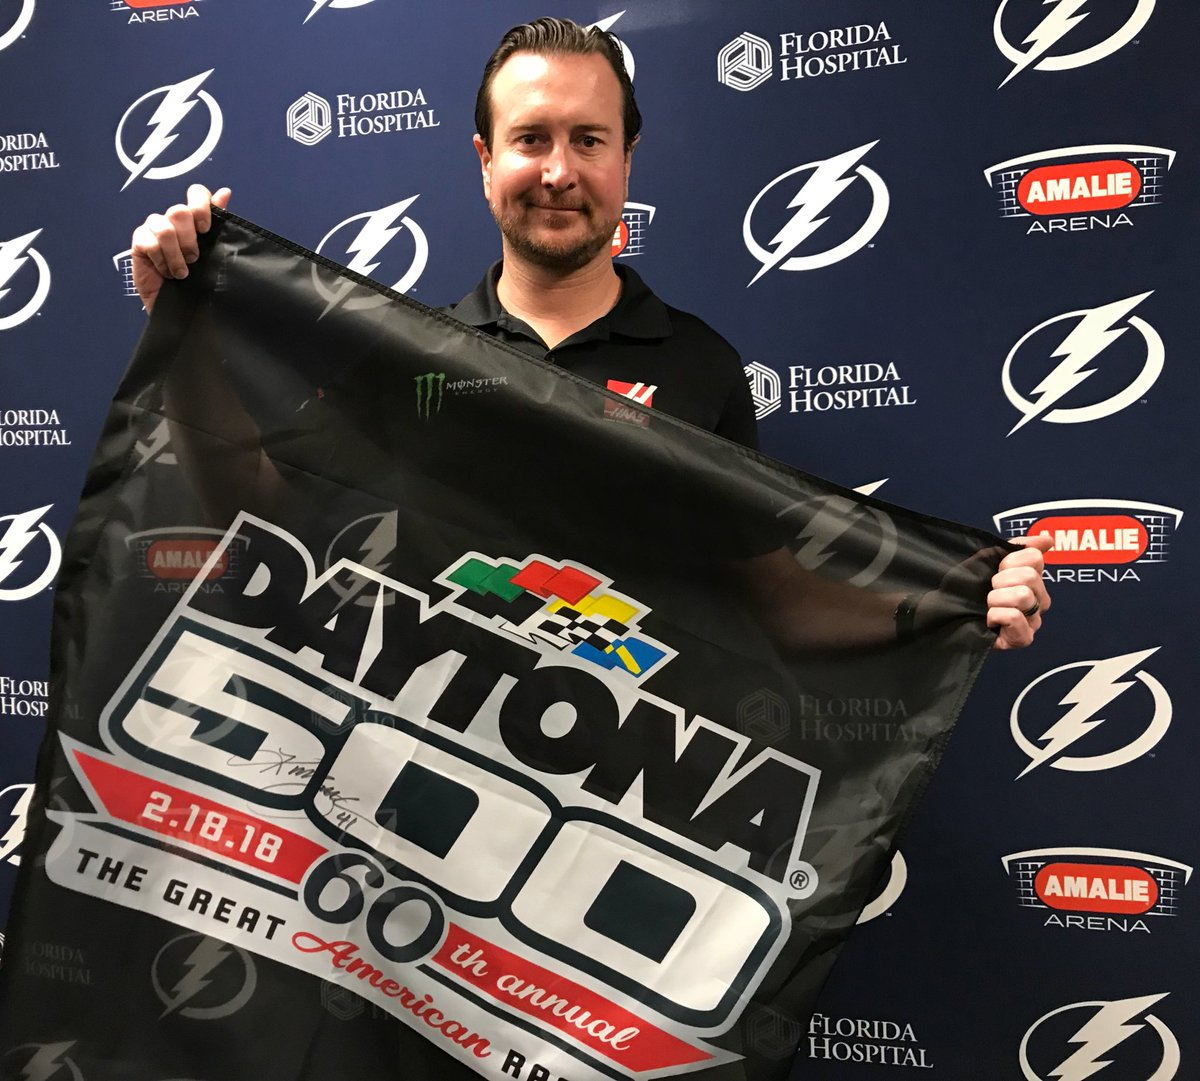 Want to win a #DAYTONA500 flag signed by @KurtBusch?! RETWEET and we'll pick a random winner tomorrow at 9:00 am ET! #ROADTODAYTONA500